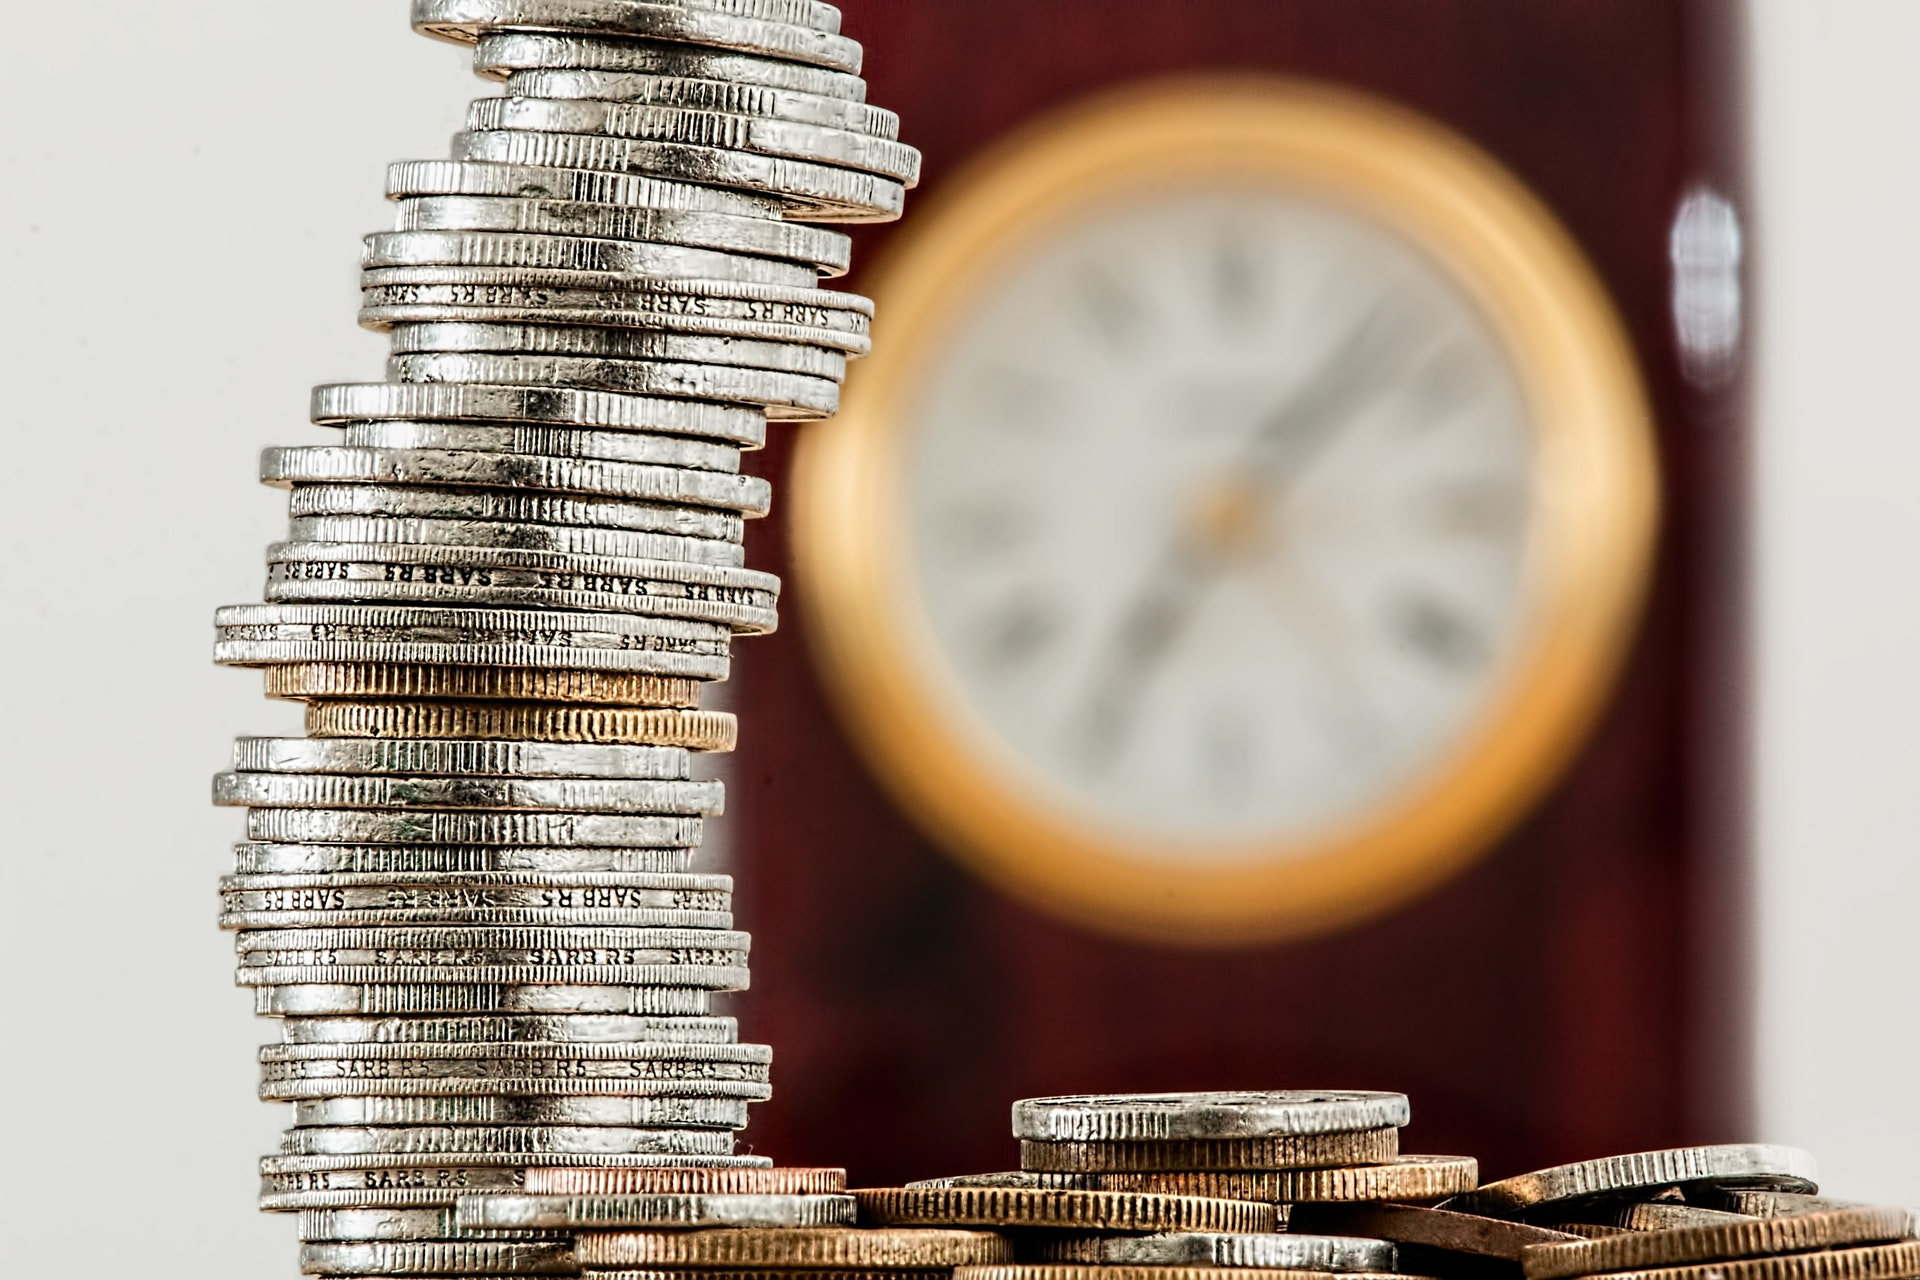 Use the Power of Compound interest to get rich